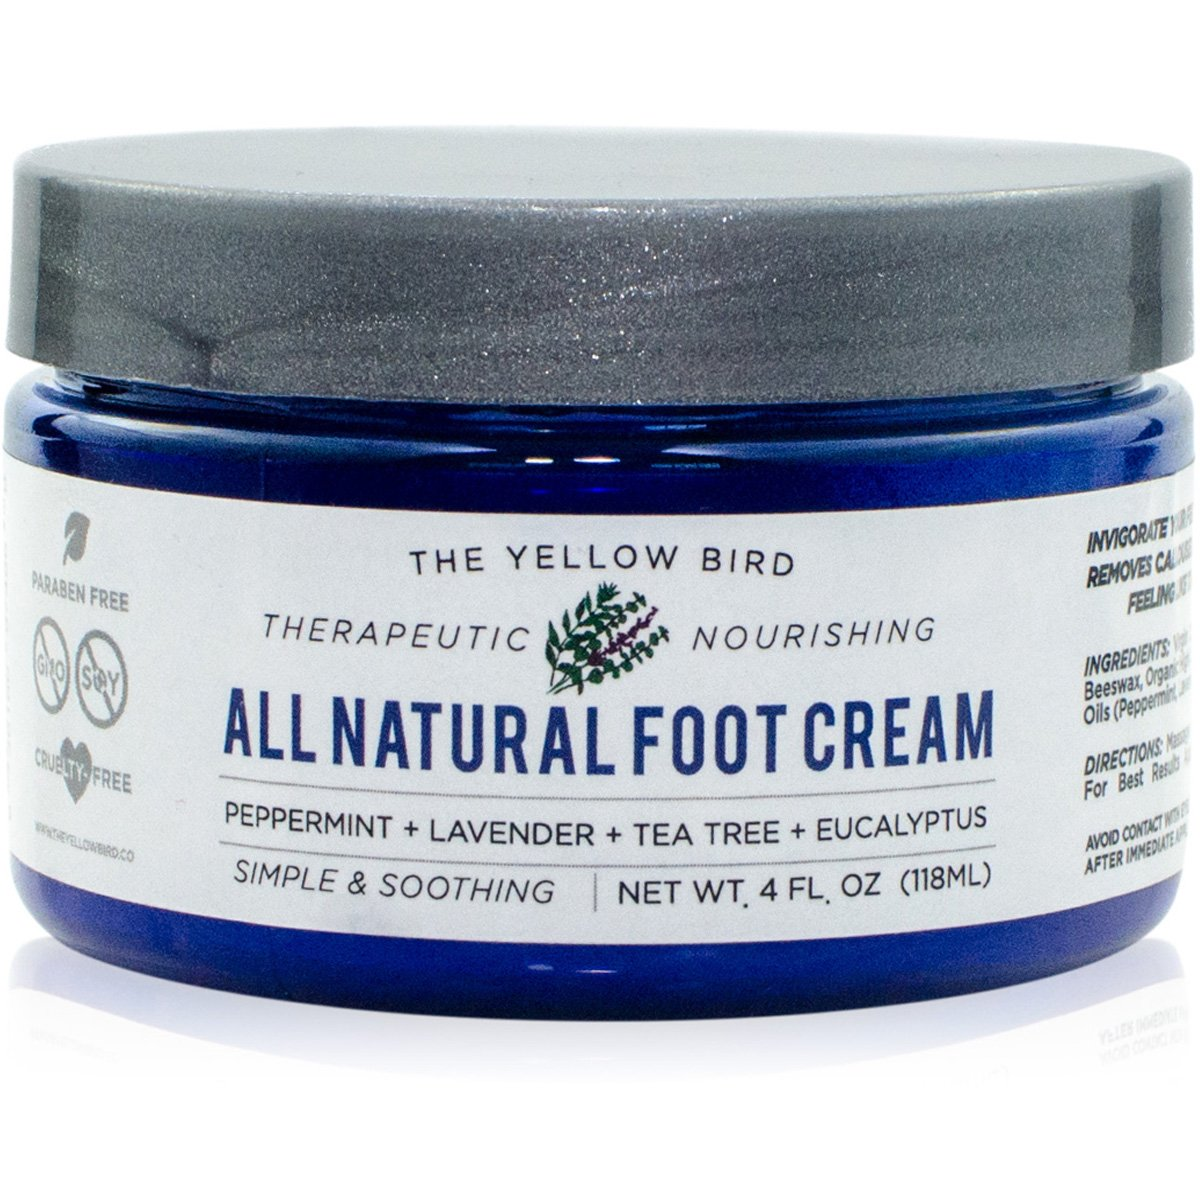 All Natural Antifungal Foot Cream. Moisturizing Organic Relief for Dry Cracked Heels, Callused Feet, Athletes Foot. Best Therapeutic Grade Essential Oils: Peppermint, Lavender, Eucalyptus, Tea Tree. the Yellow Bird AHGRD006731